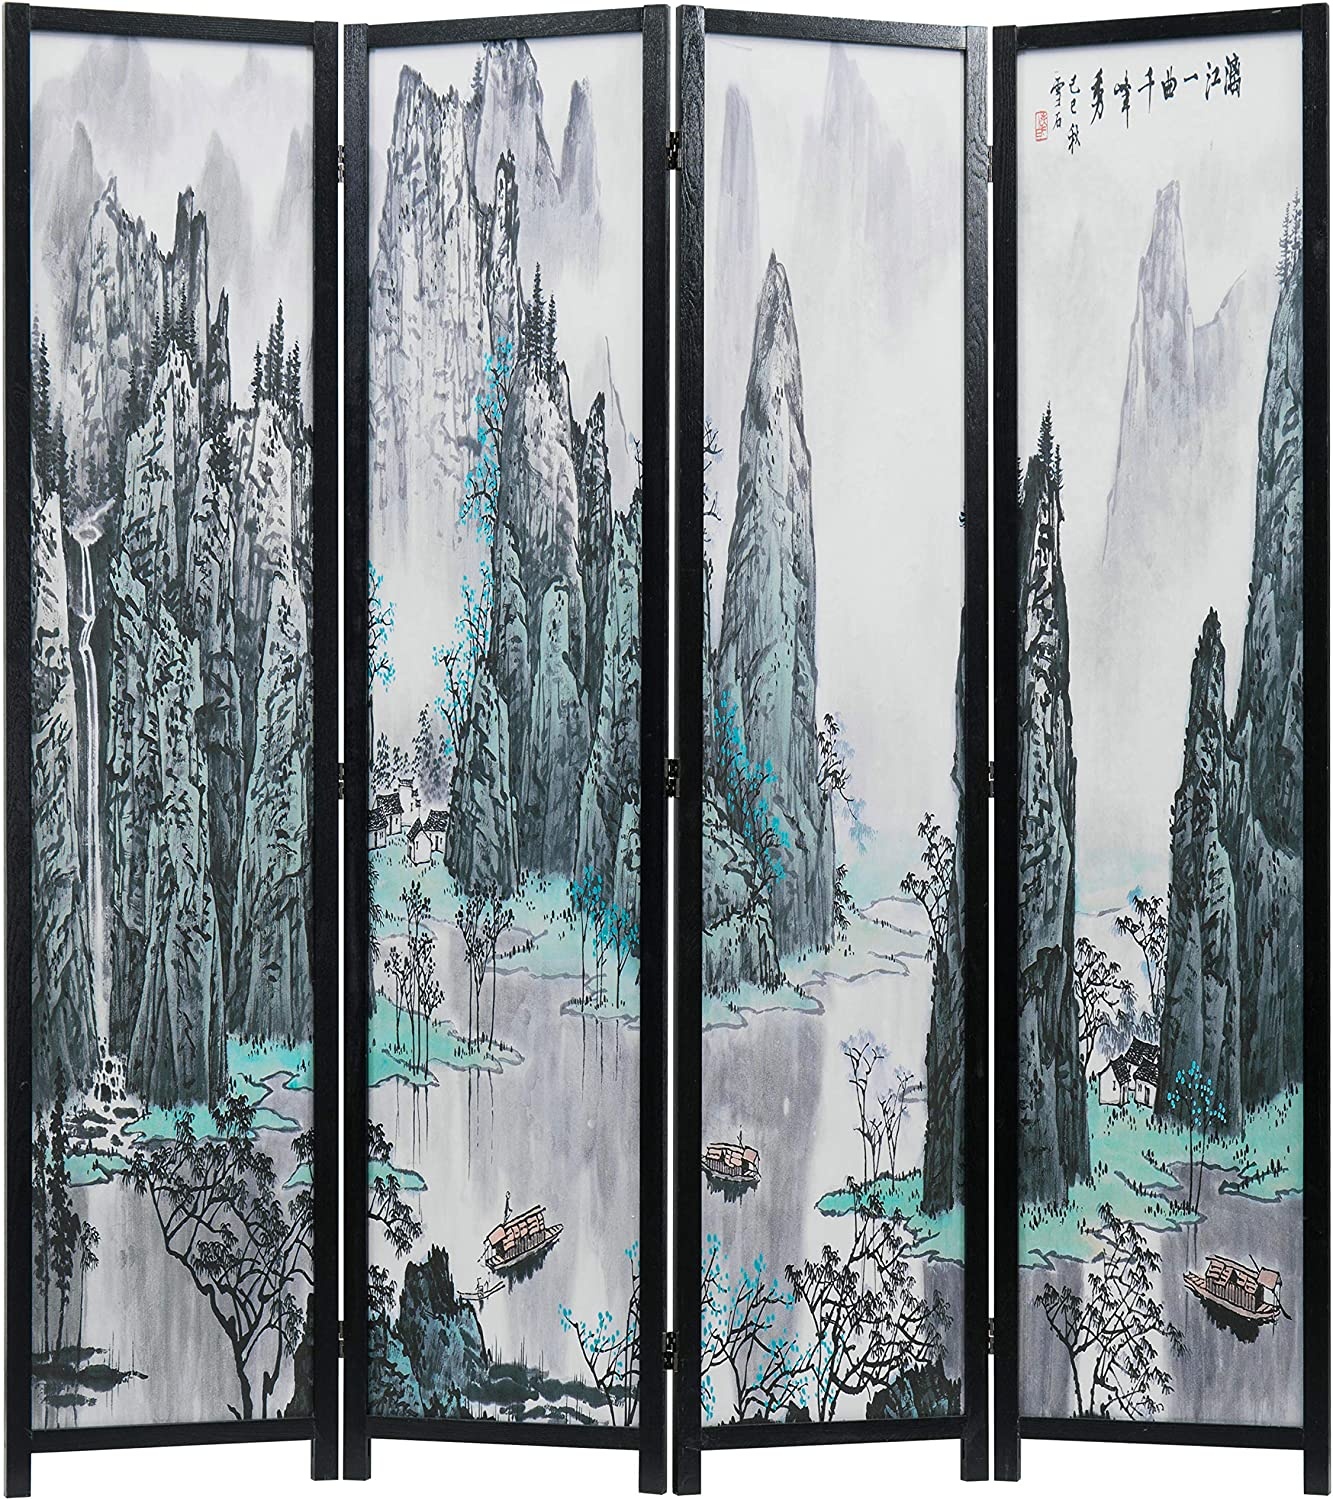 MyGift 4-Panel Finally popular brand Asian Watercolor Chinese Calli Landscape Product Oriental